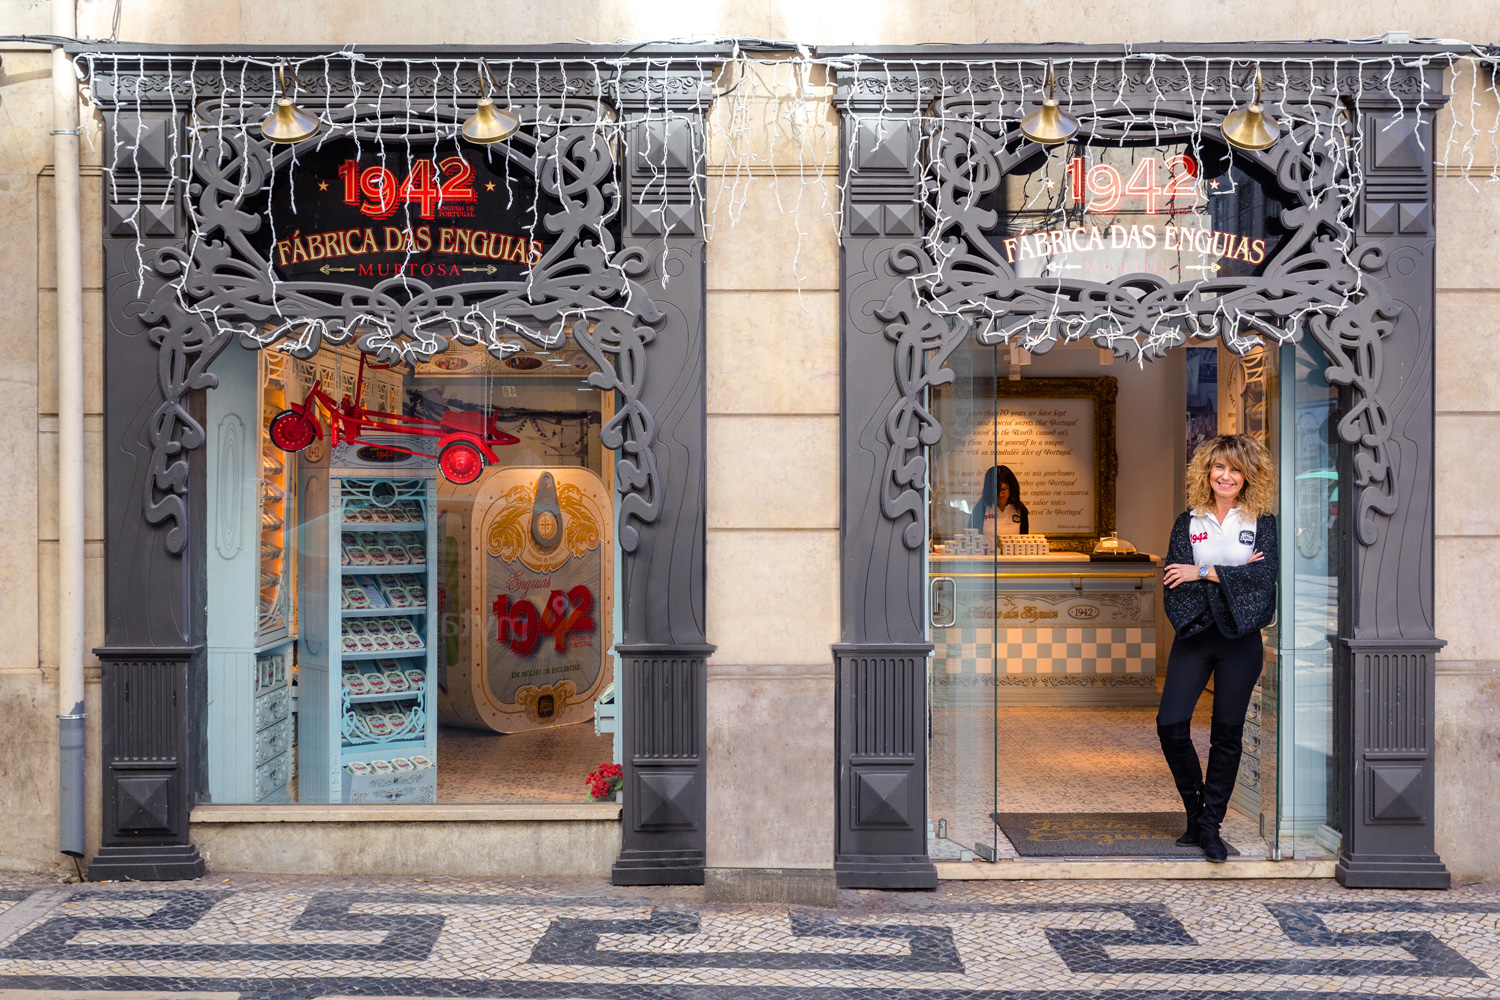 Ana Godinho Martins manages a one-of-a-kind shop